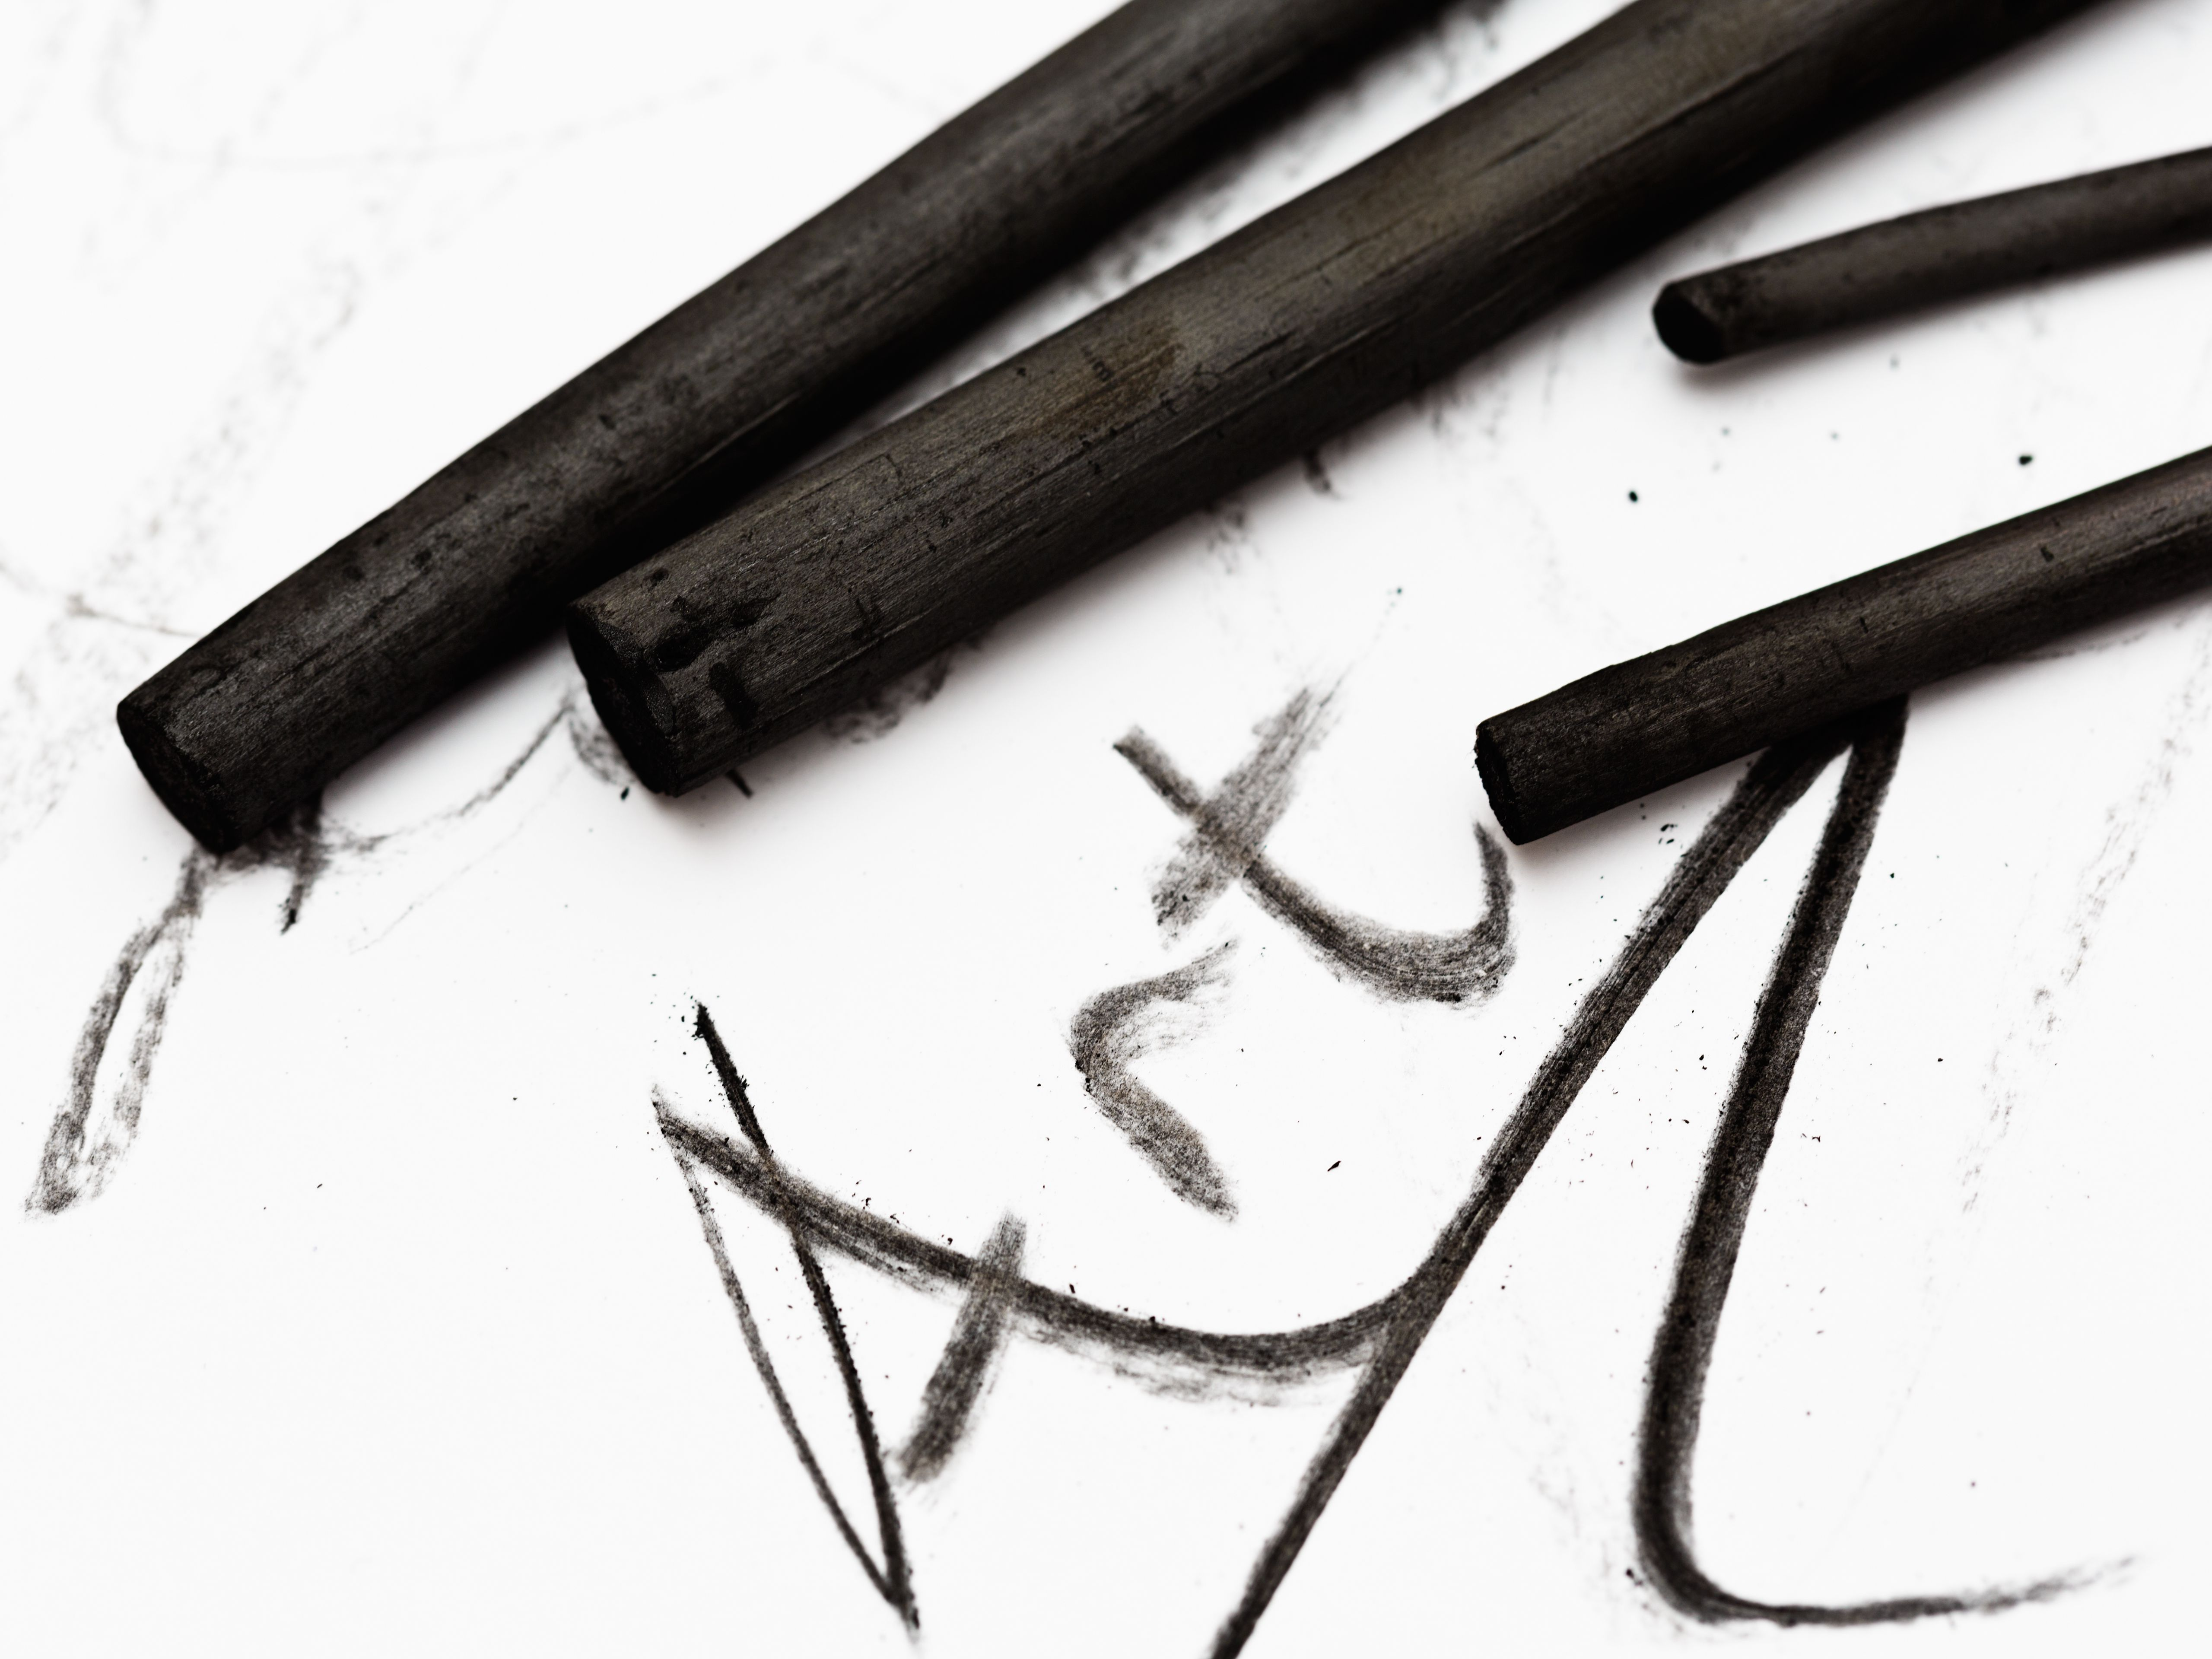 A guide to drawing supplies